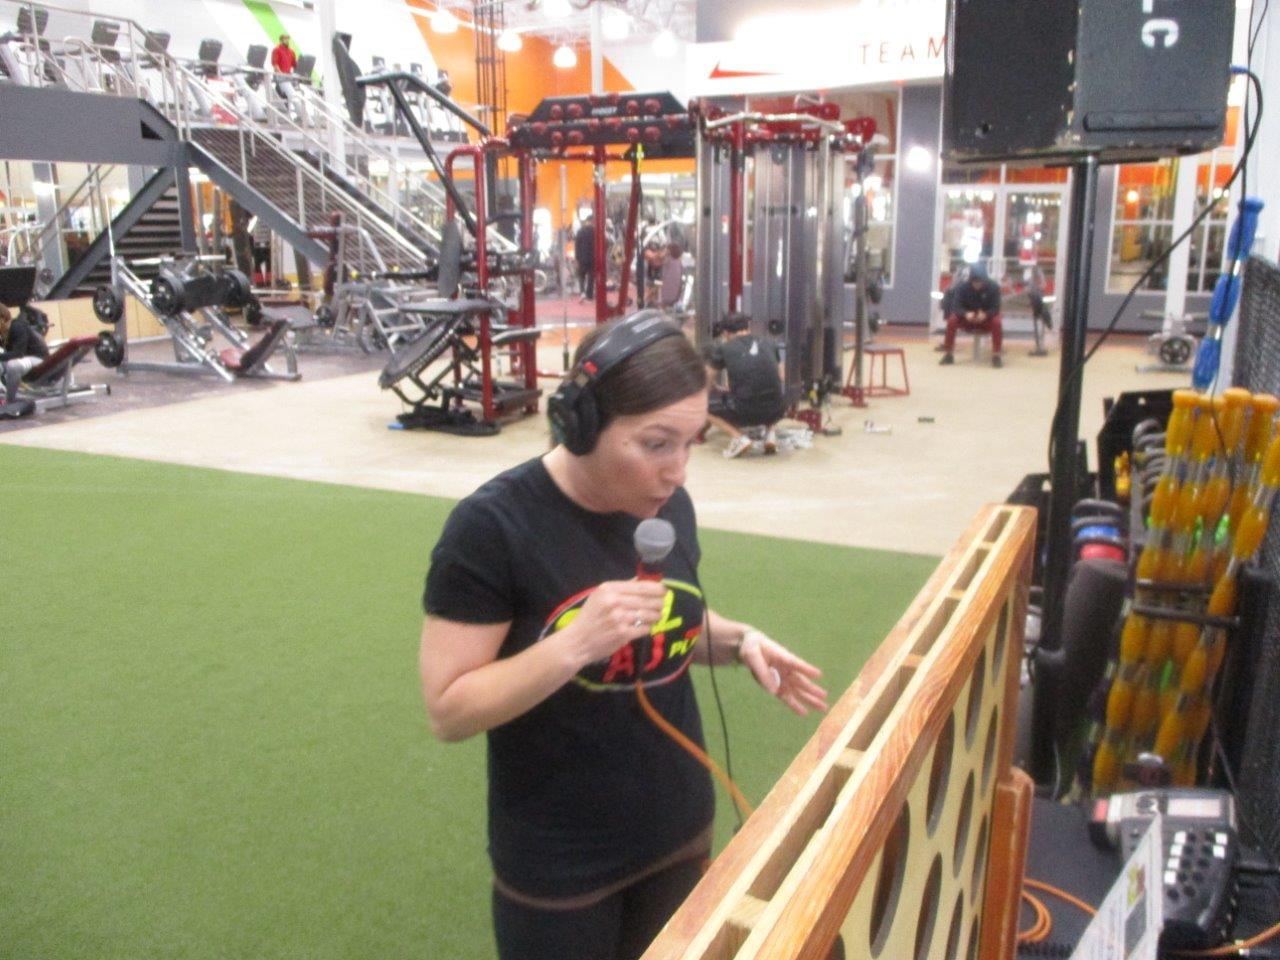 Pam at The Edge Fitness Clubs in Fairfield